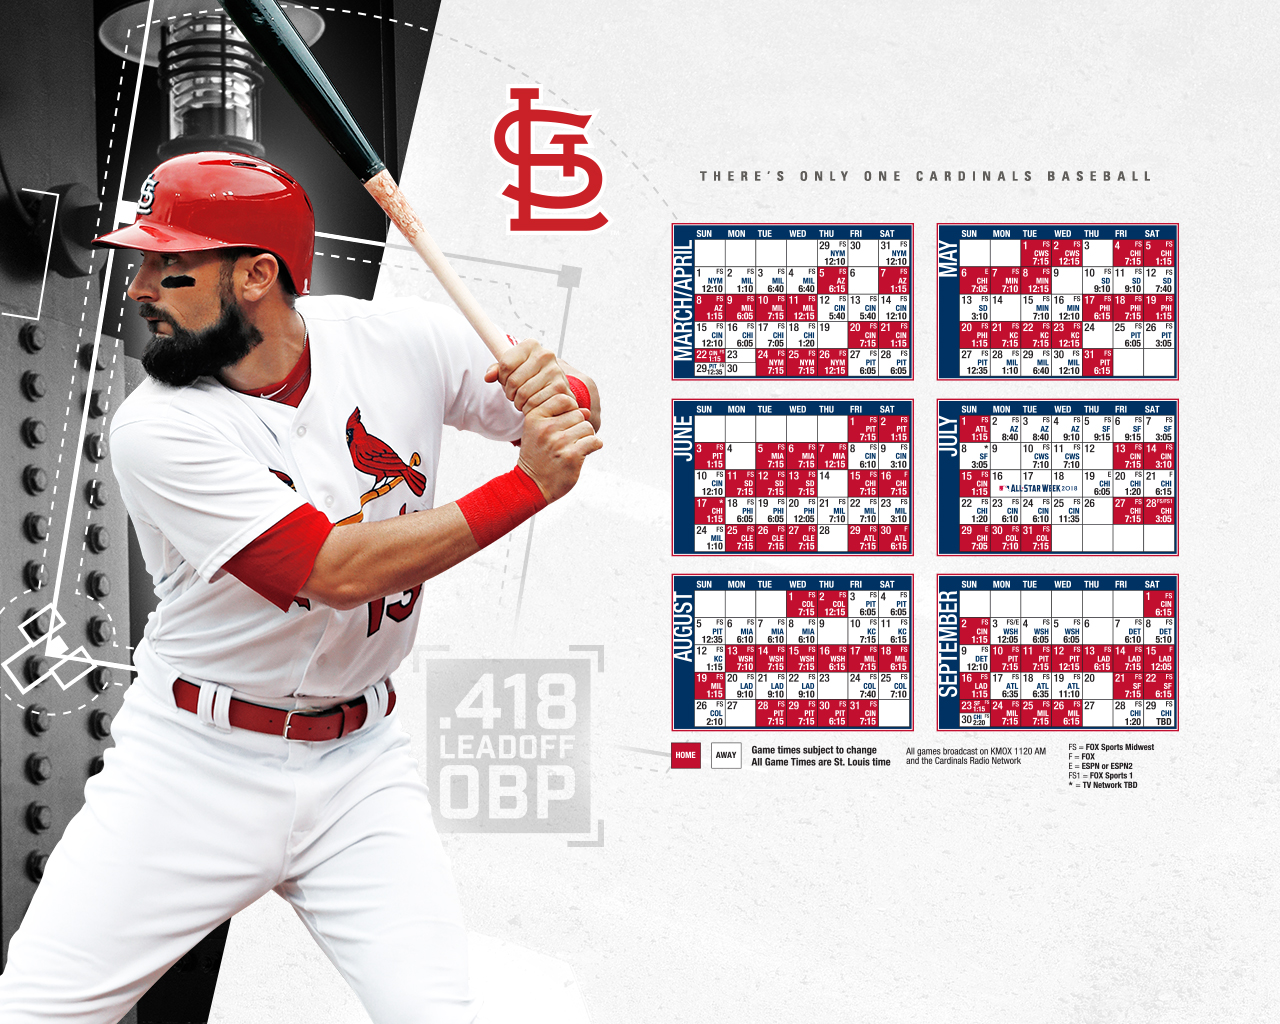 Free Download Desktop Wallpaper St Louis Cardinals 1280x1024 For